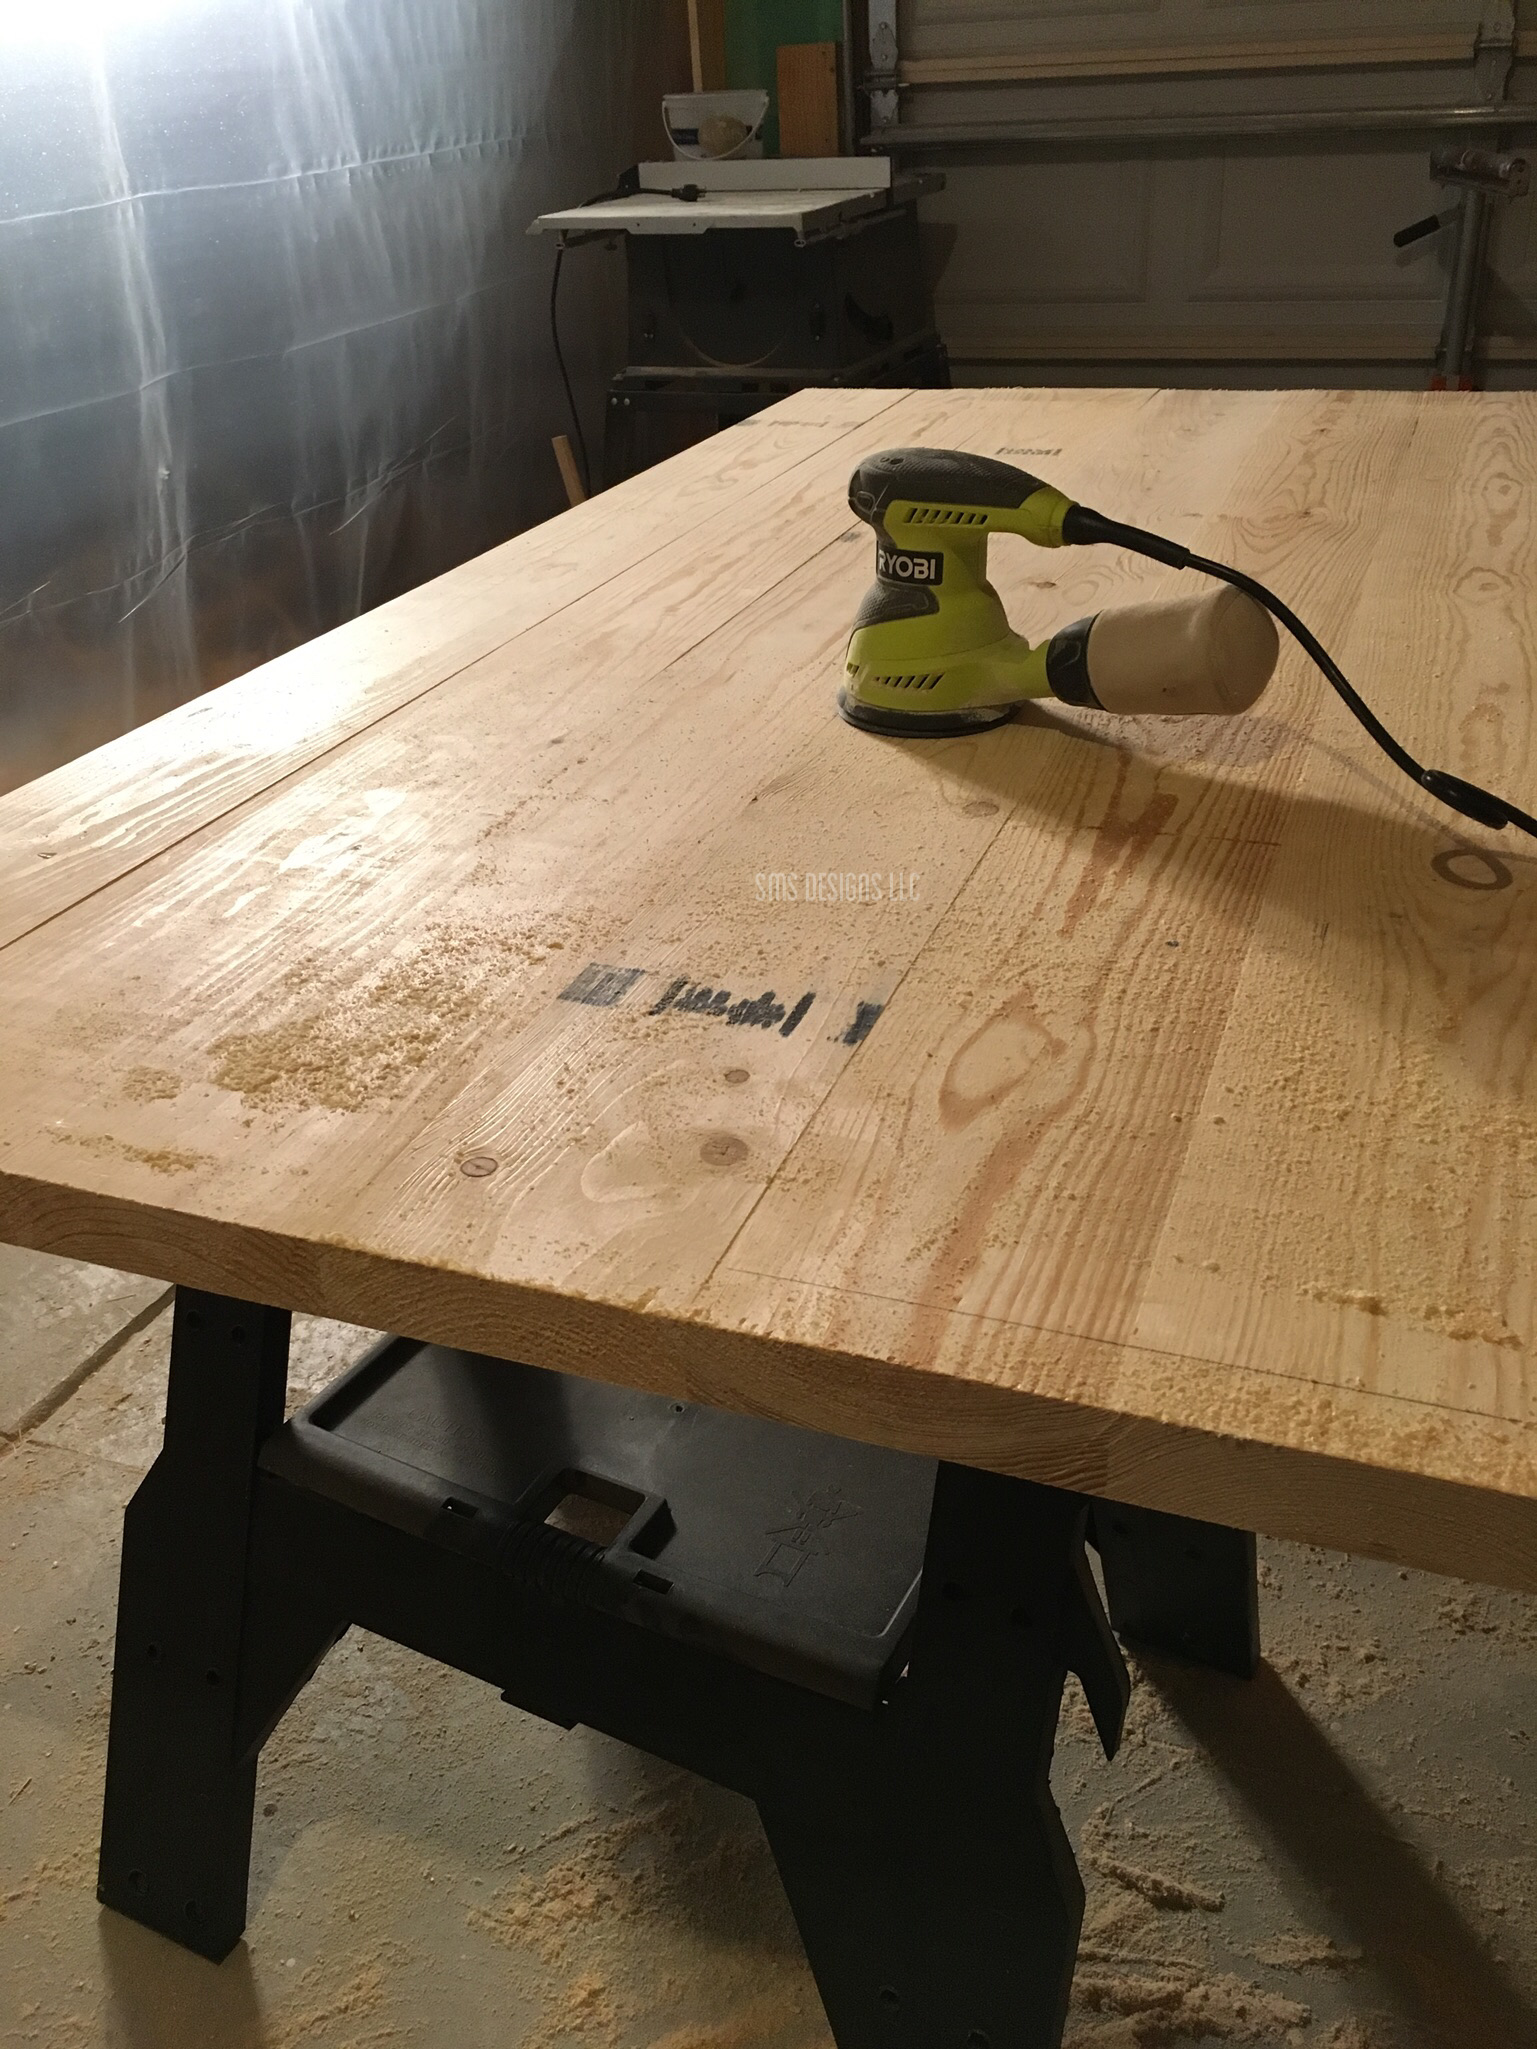 Once You Are Happy With The Texture Of Your Table Top, You Are Ready To  Stain Or Finish Your Top. I Dont Have Any Personal Suggestions For Finishing  A Raw ...